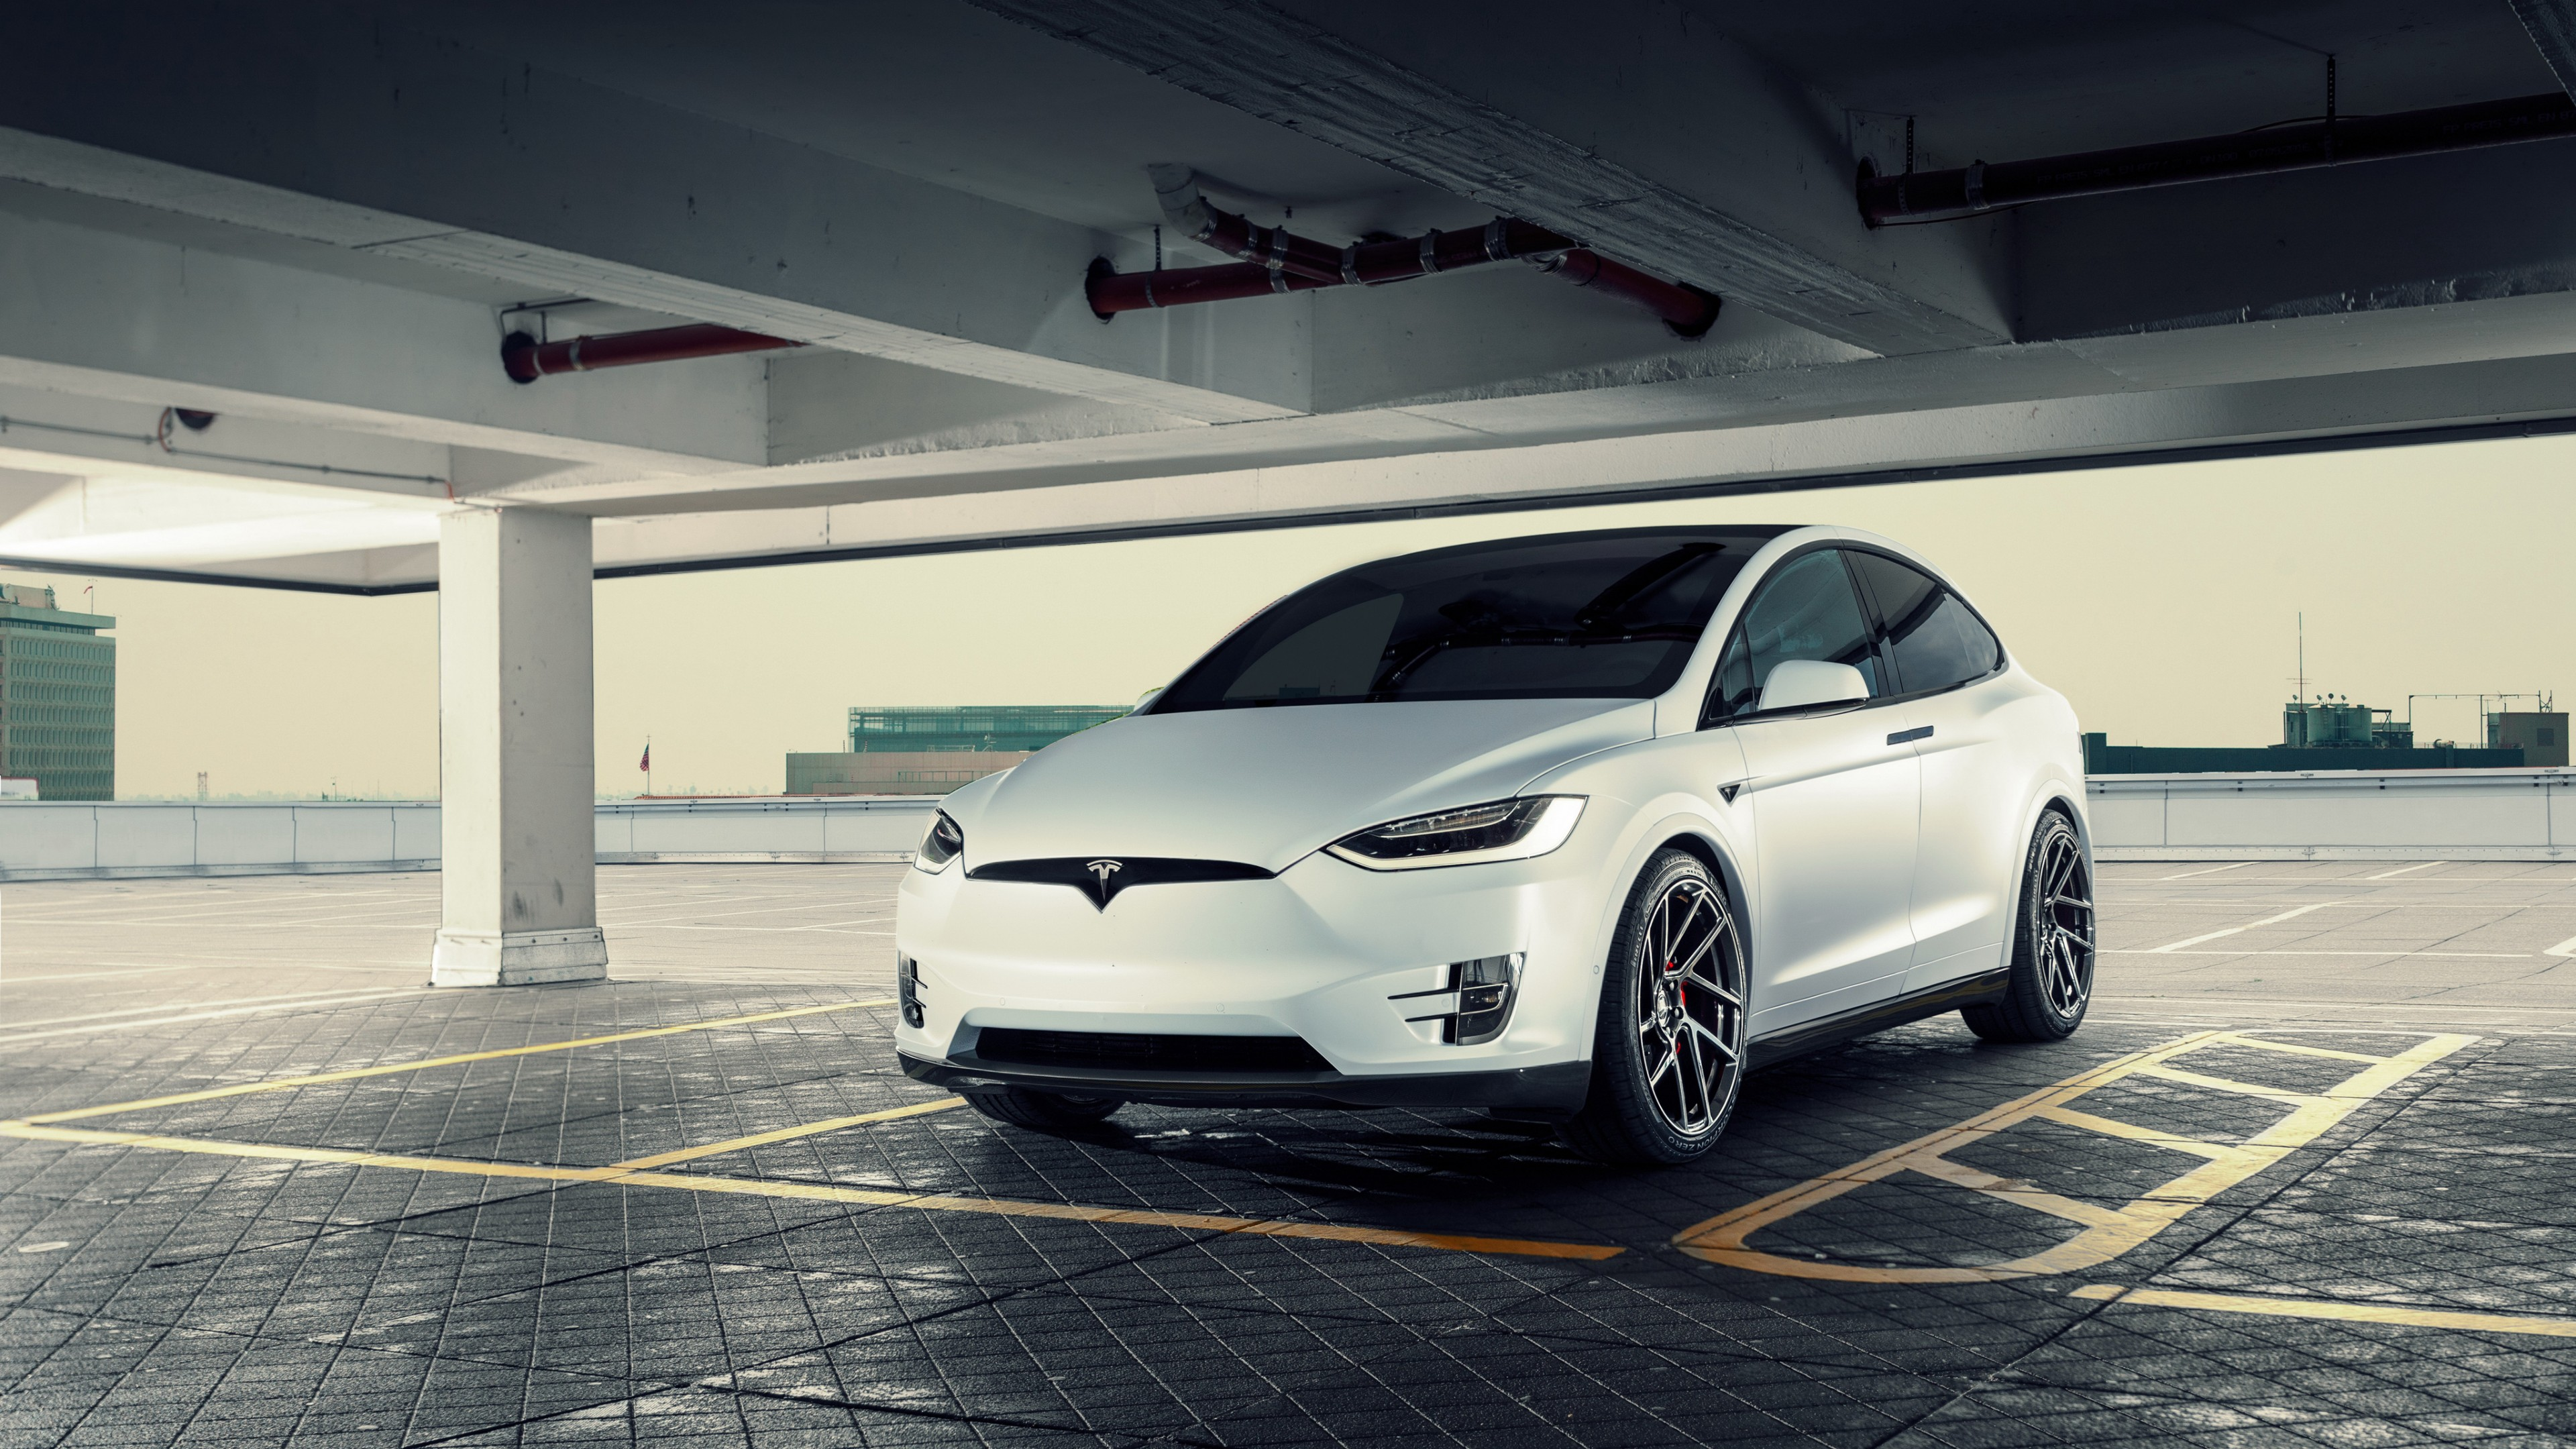 Hd Car Wallpapers For Android Tablets 2017 Novitec Tesla Model X Wallpaper Hd Car Wallpapers